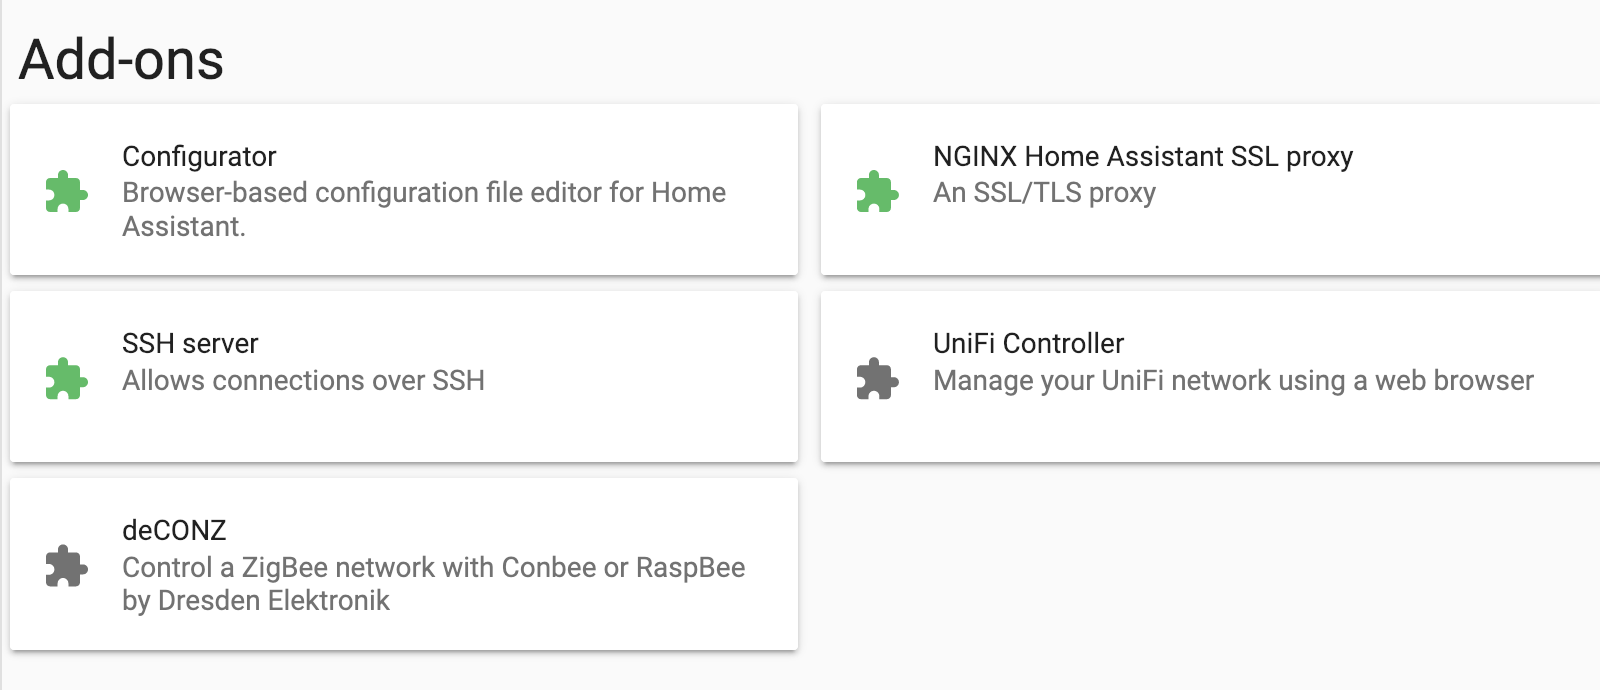 UniFi Controller stucks on startup · Issue #11 · hassio-addons/addon